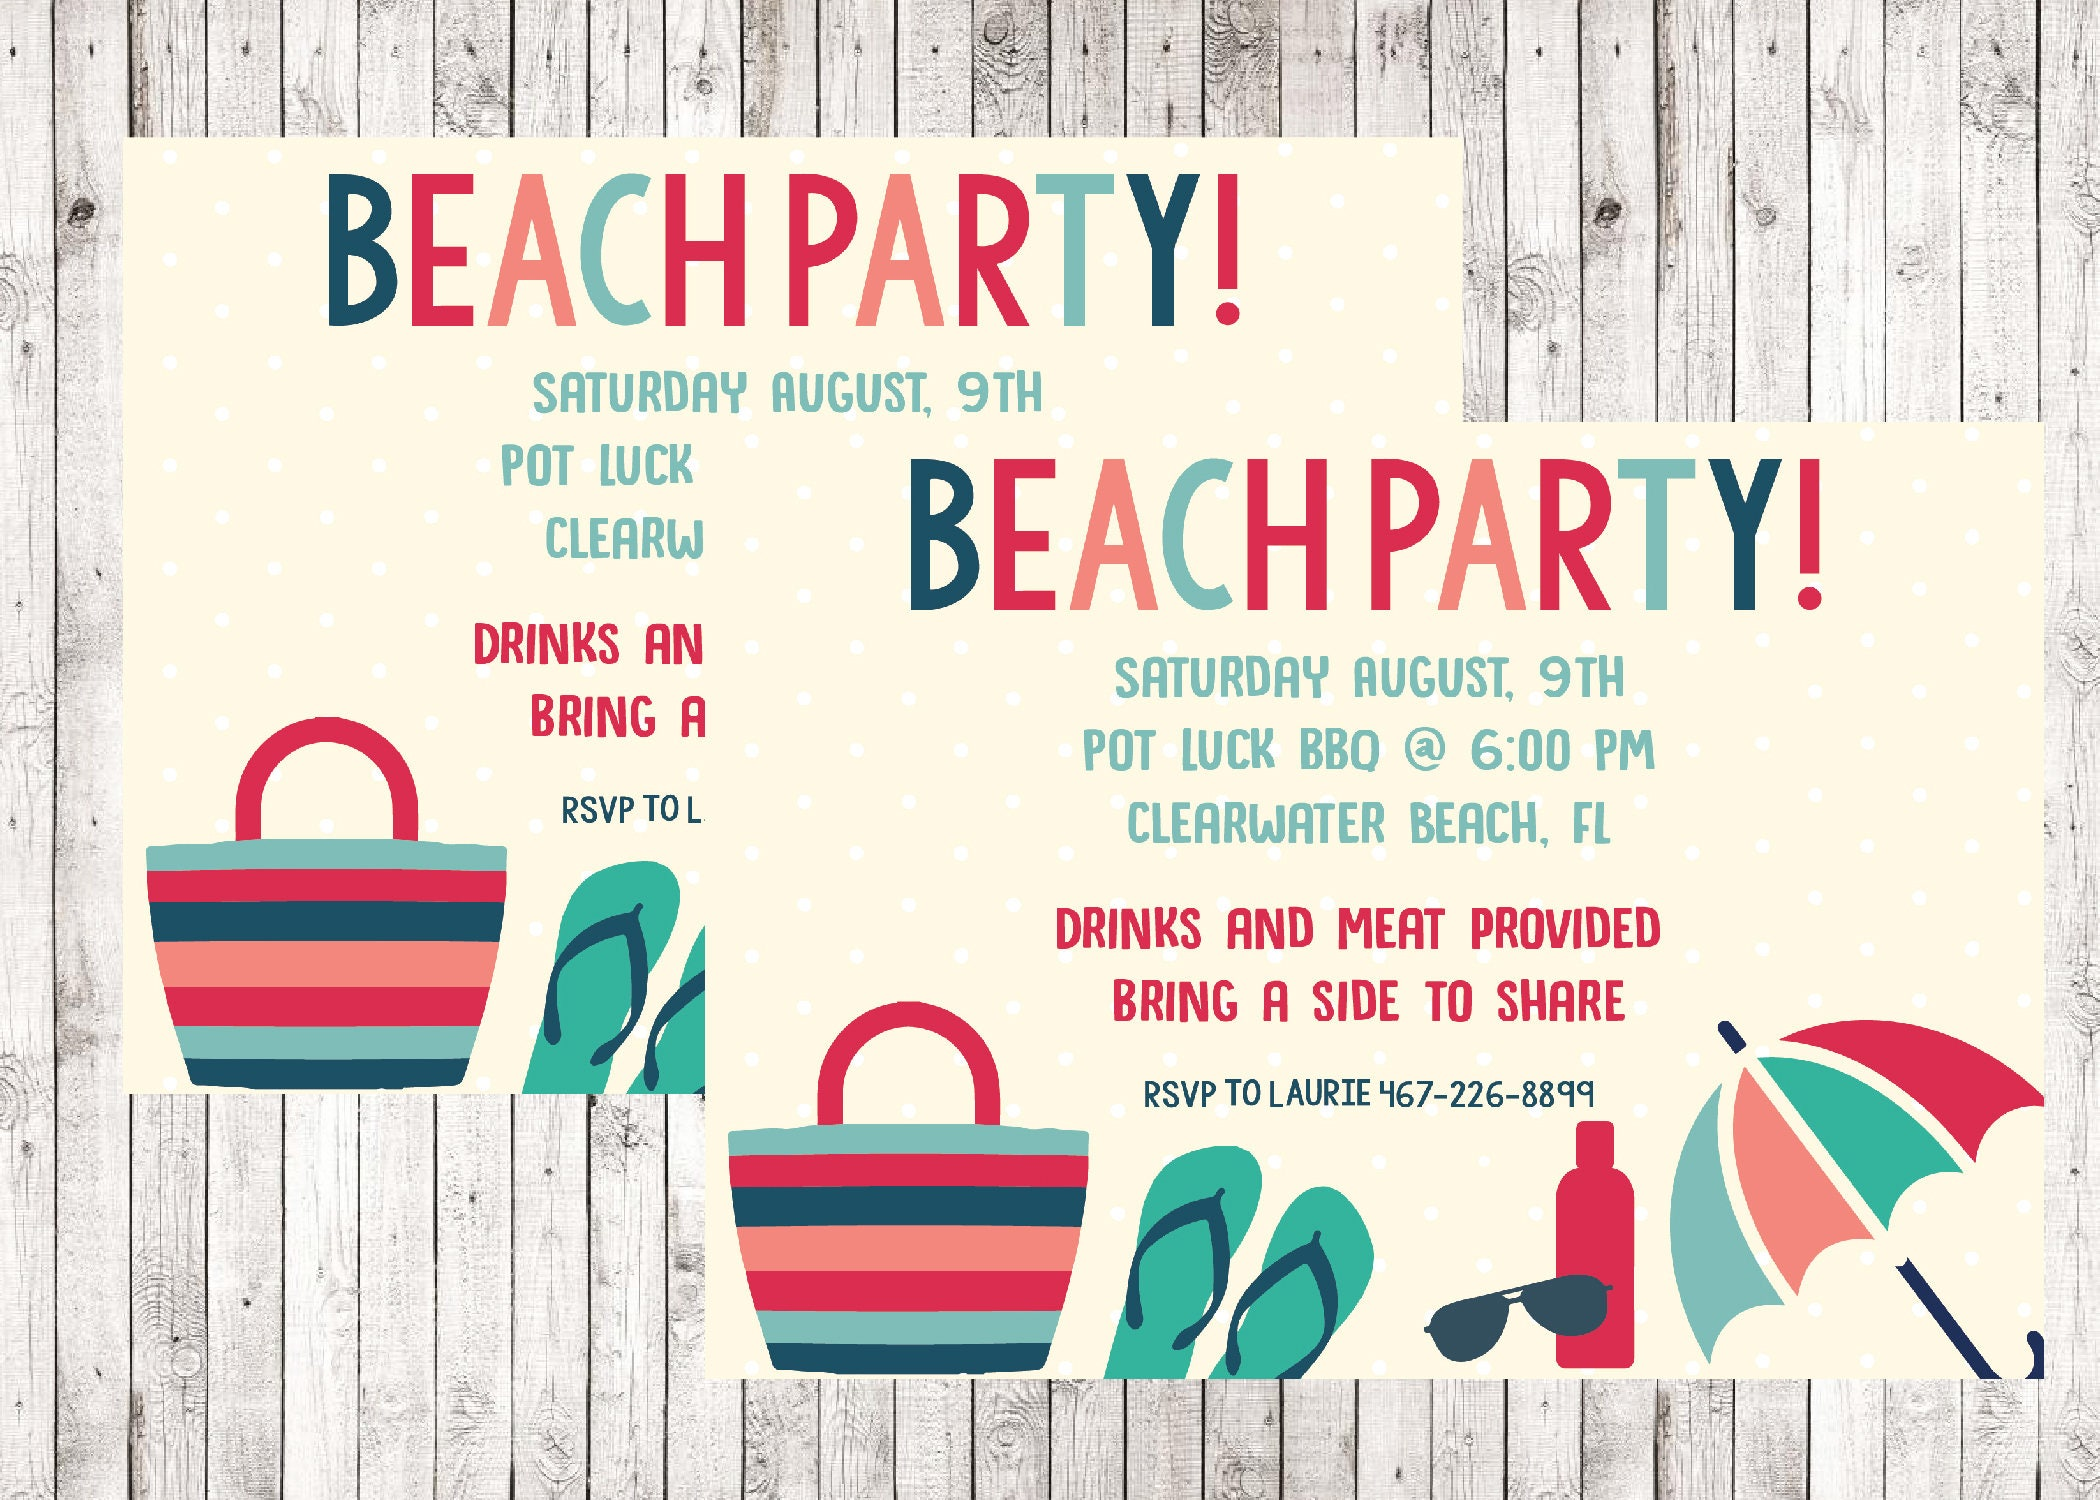 Summer beach party invitation birthday party printable invite summer beach party invitation birthday party printable invite neighborhood family end of stopboris Image collections